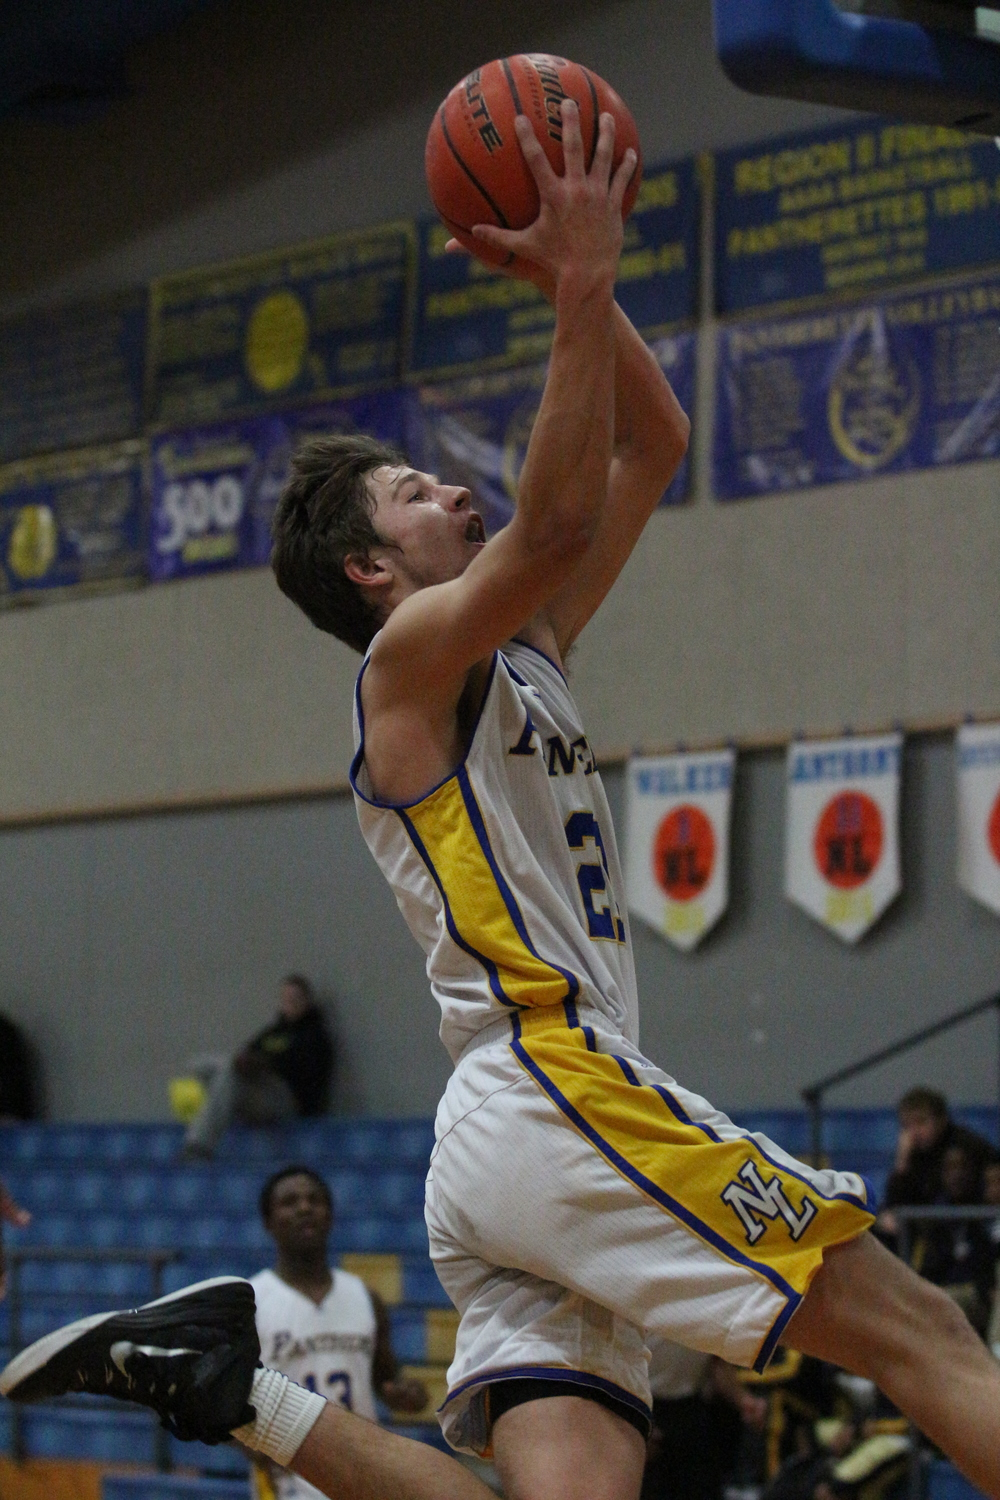 (Photo by Bill Higgins) Tyler Anthony going in for a layup on Senior Night against Pittsburg.